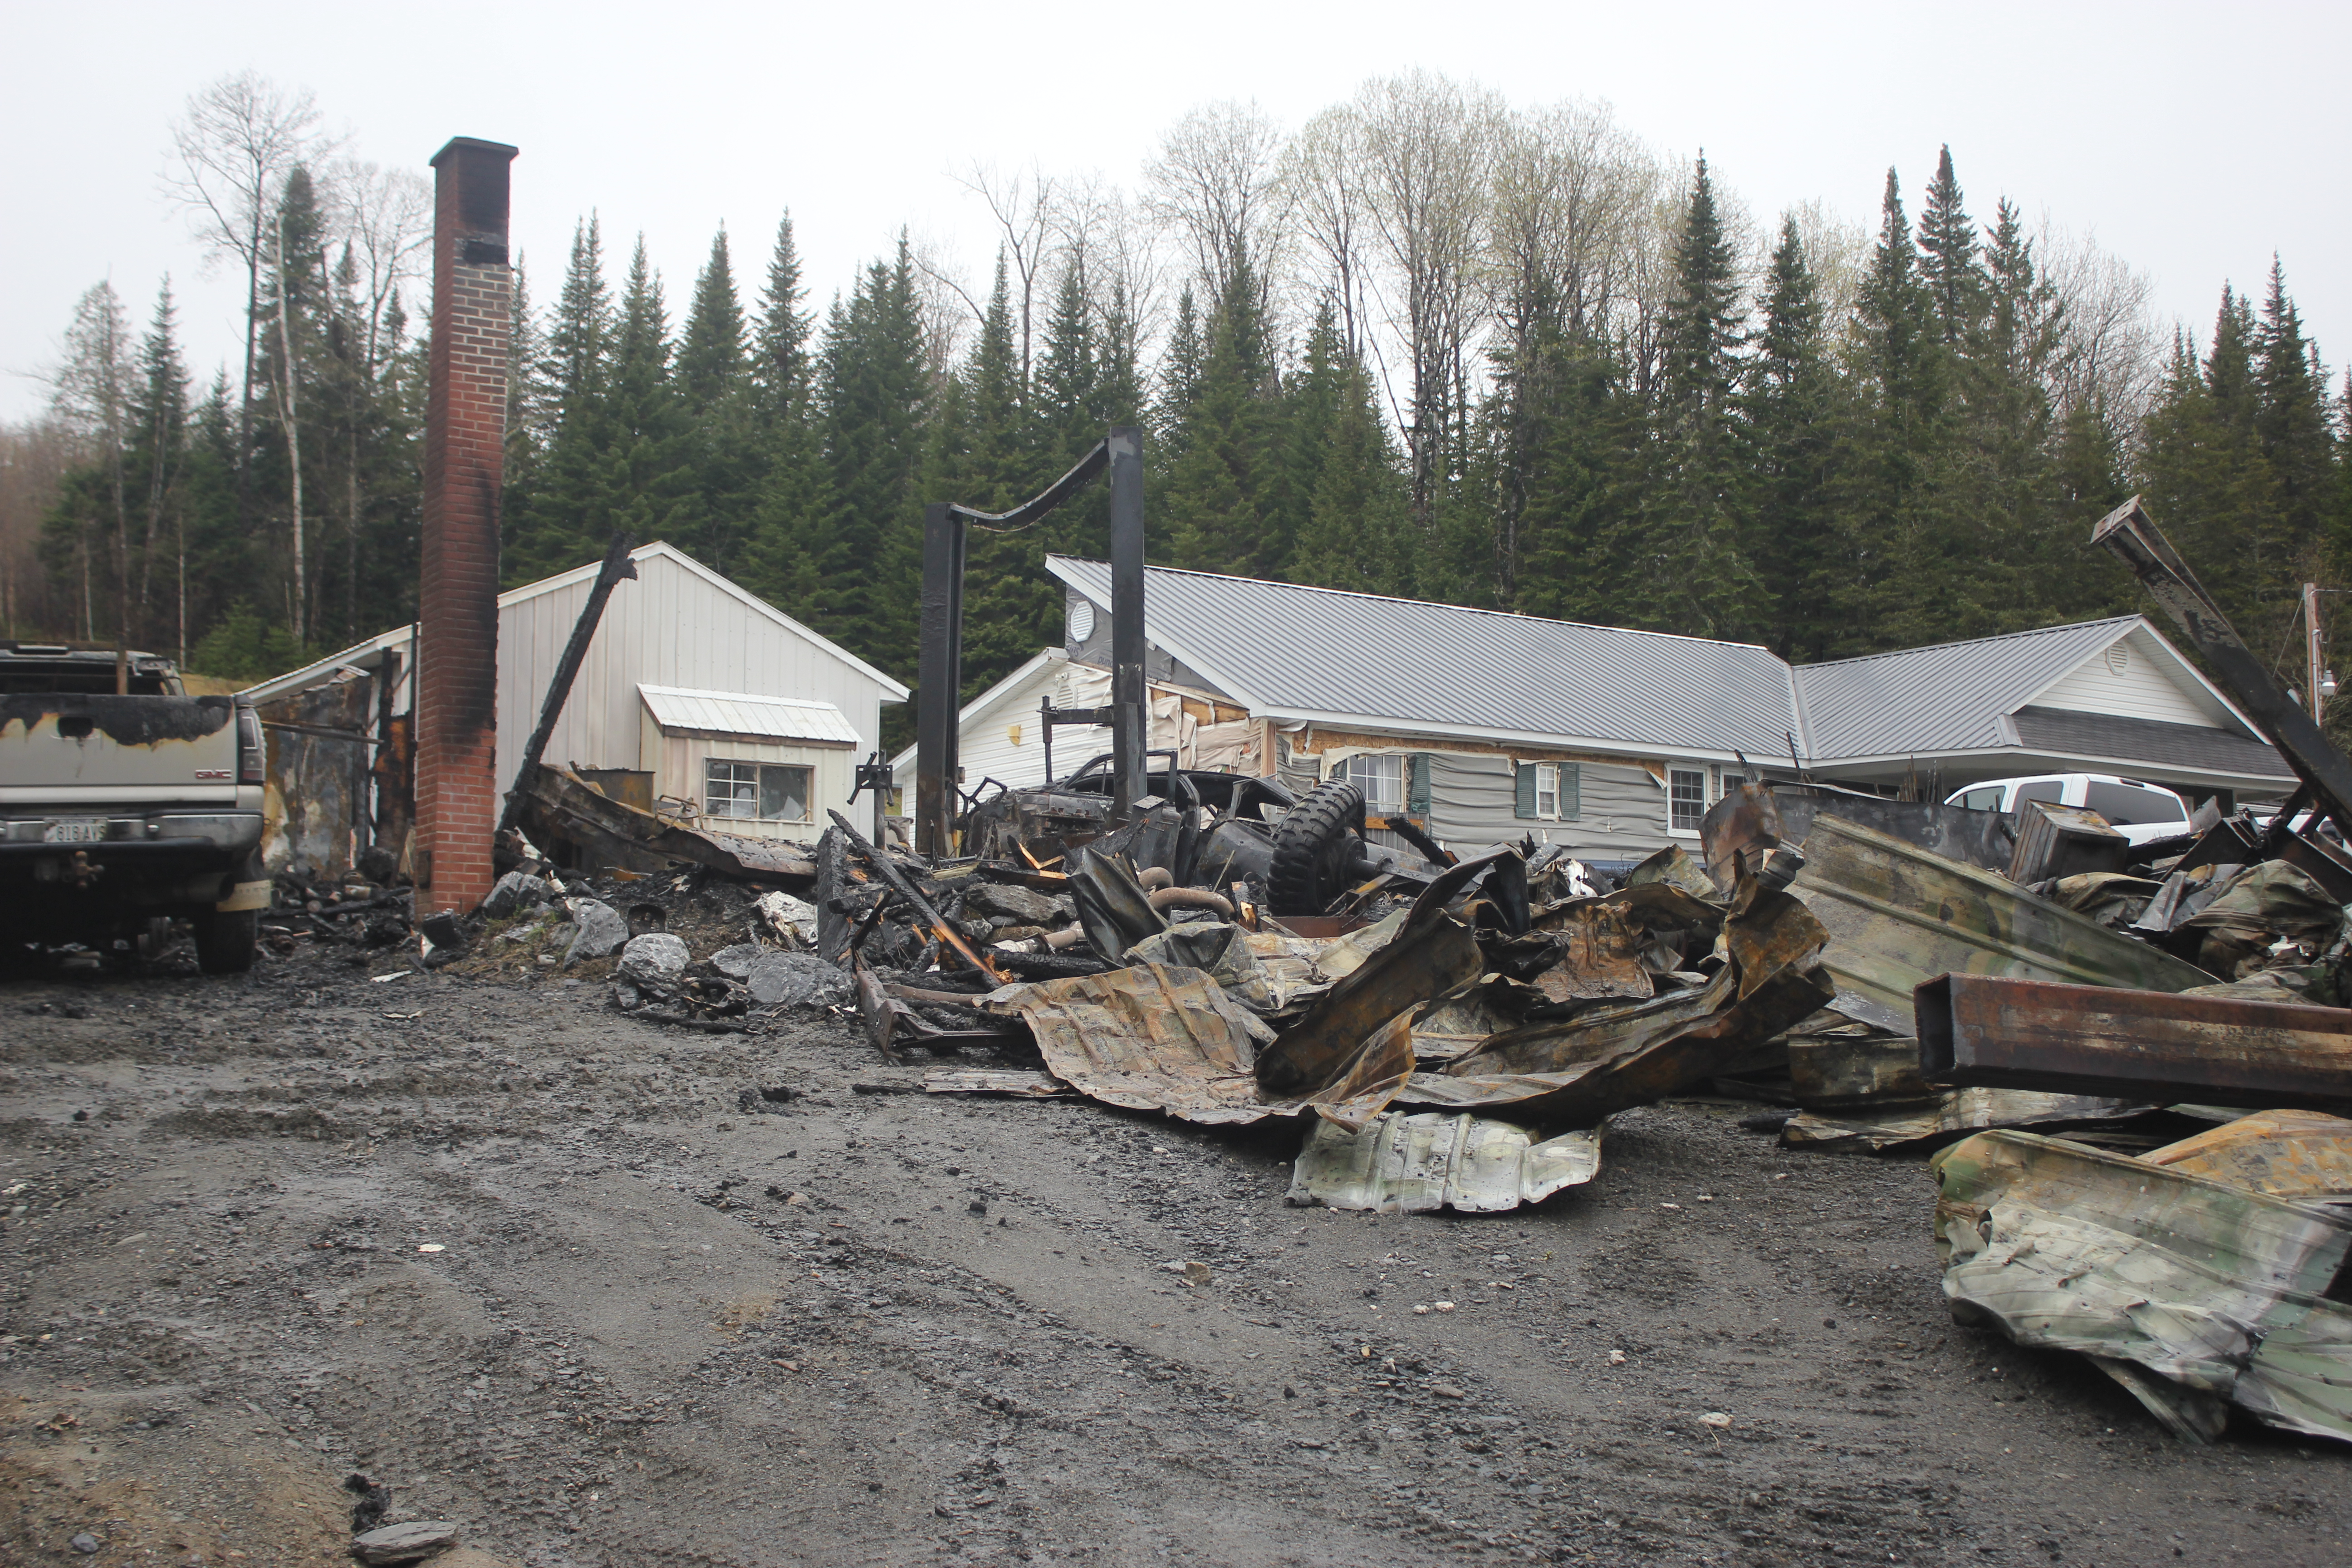 Dog alerts family to early morning fire in Fort Kent - Fiddlehead Focus